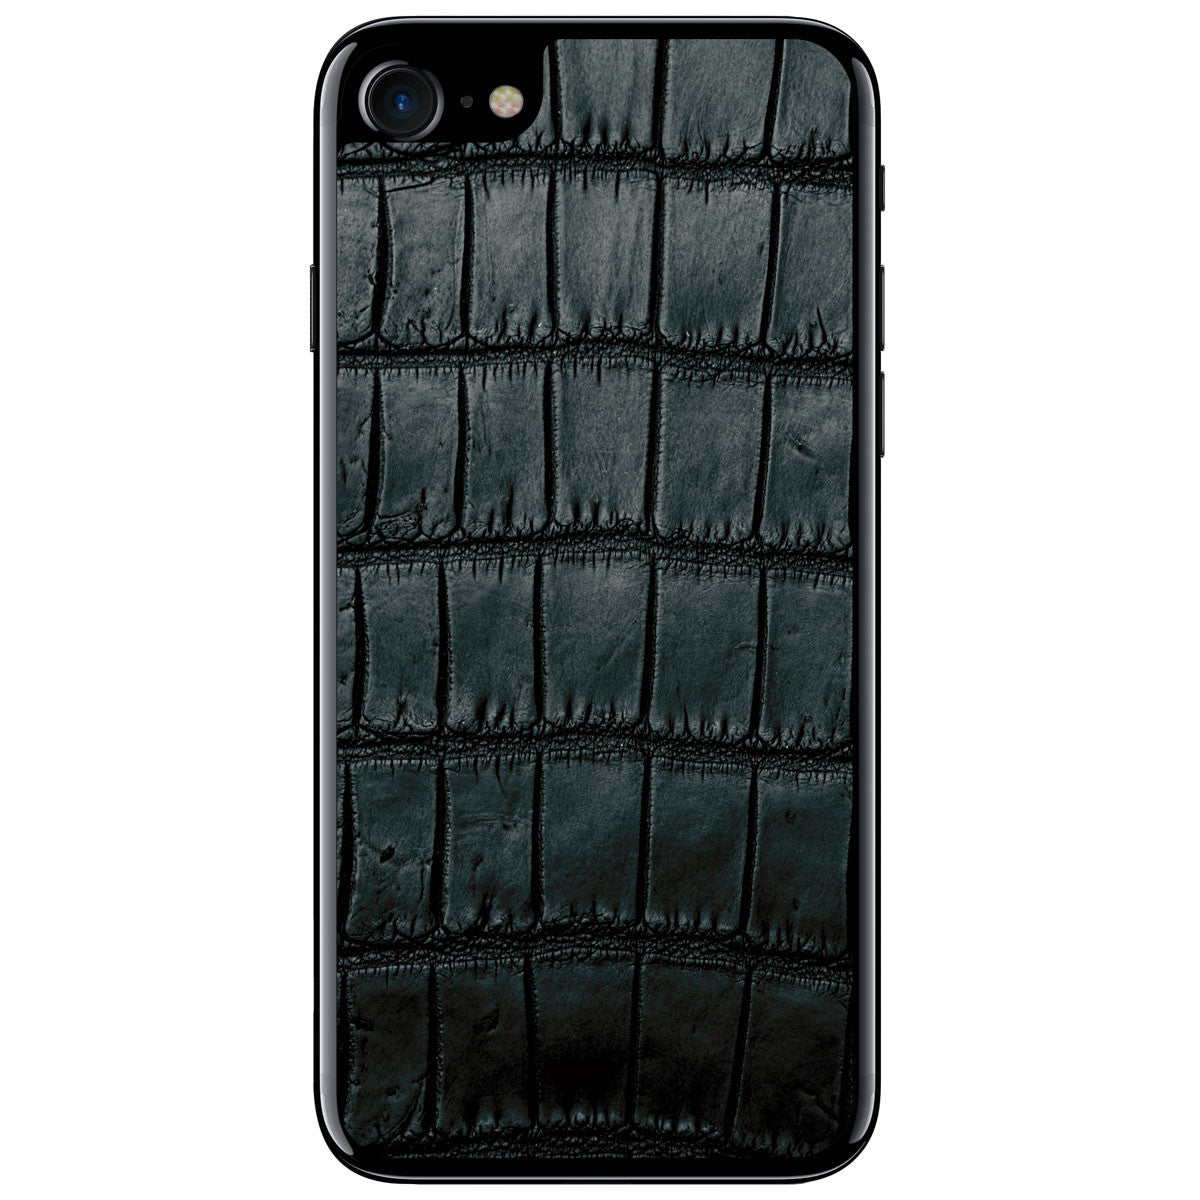 Black Oiled Alligator iPhone 7 Leather Skin